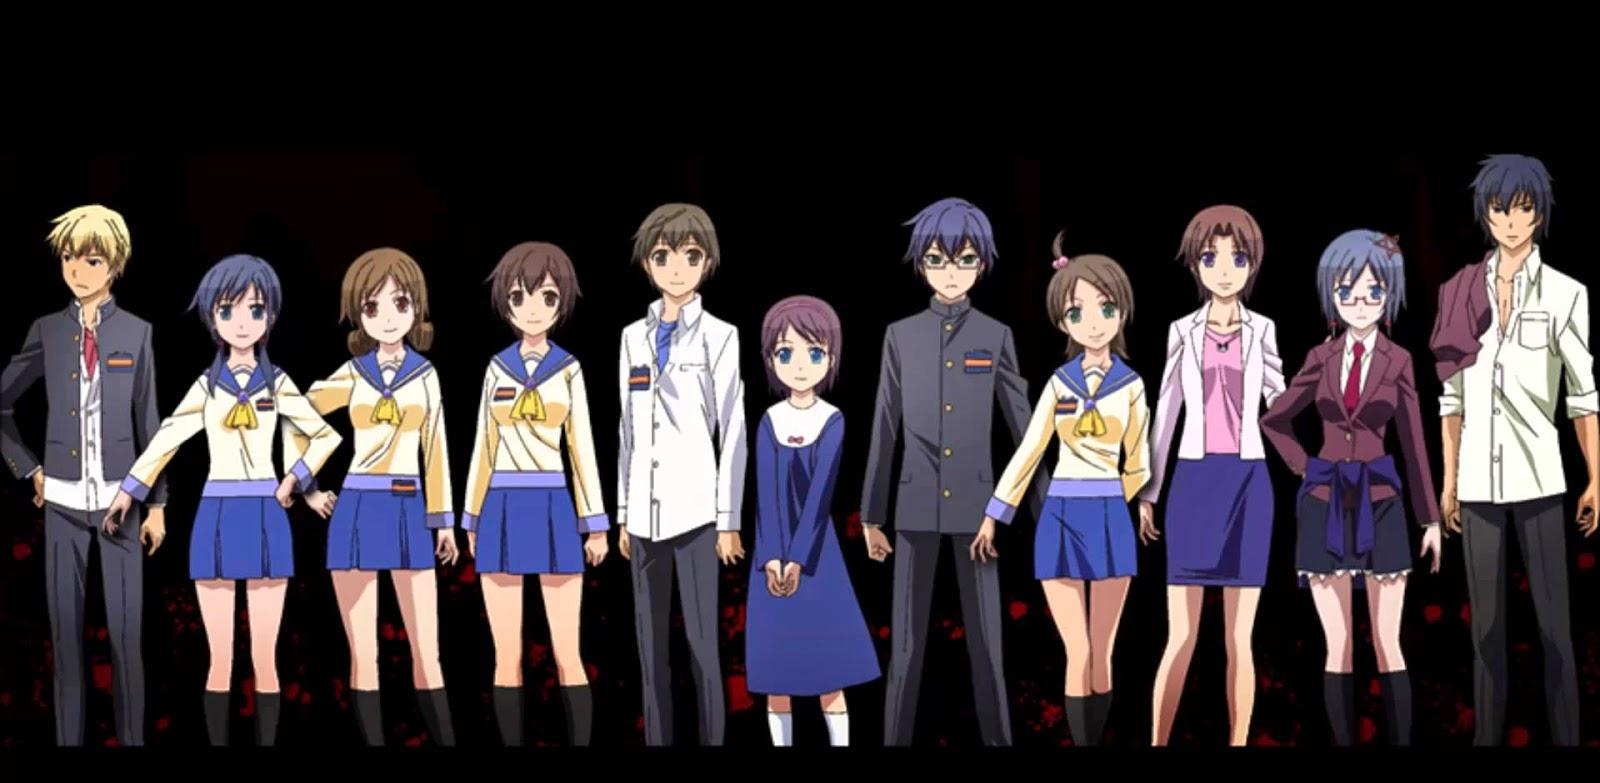 Xem phim Corpse Party: Tortured Souls - Bougyakusareta Tamashii no Jukyou - Corpse Party: Tortured Souls OVA Vietsub